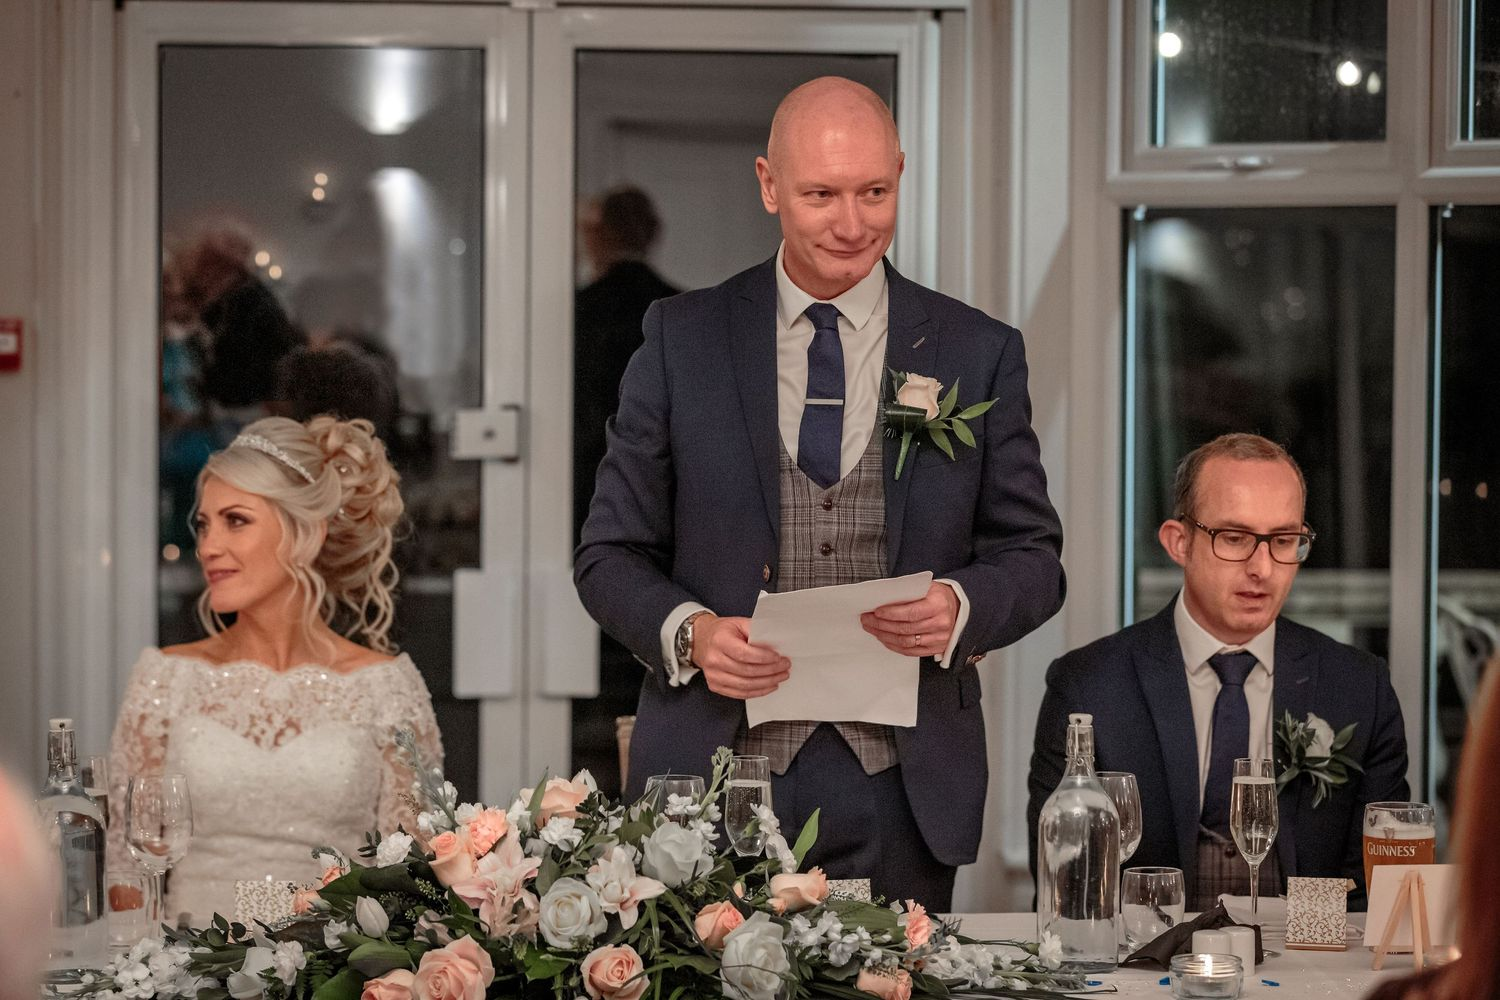 the groom stands up holding his notes to give his wedding speech